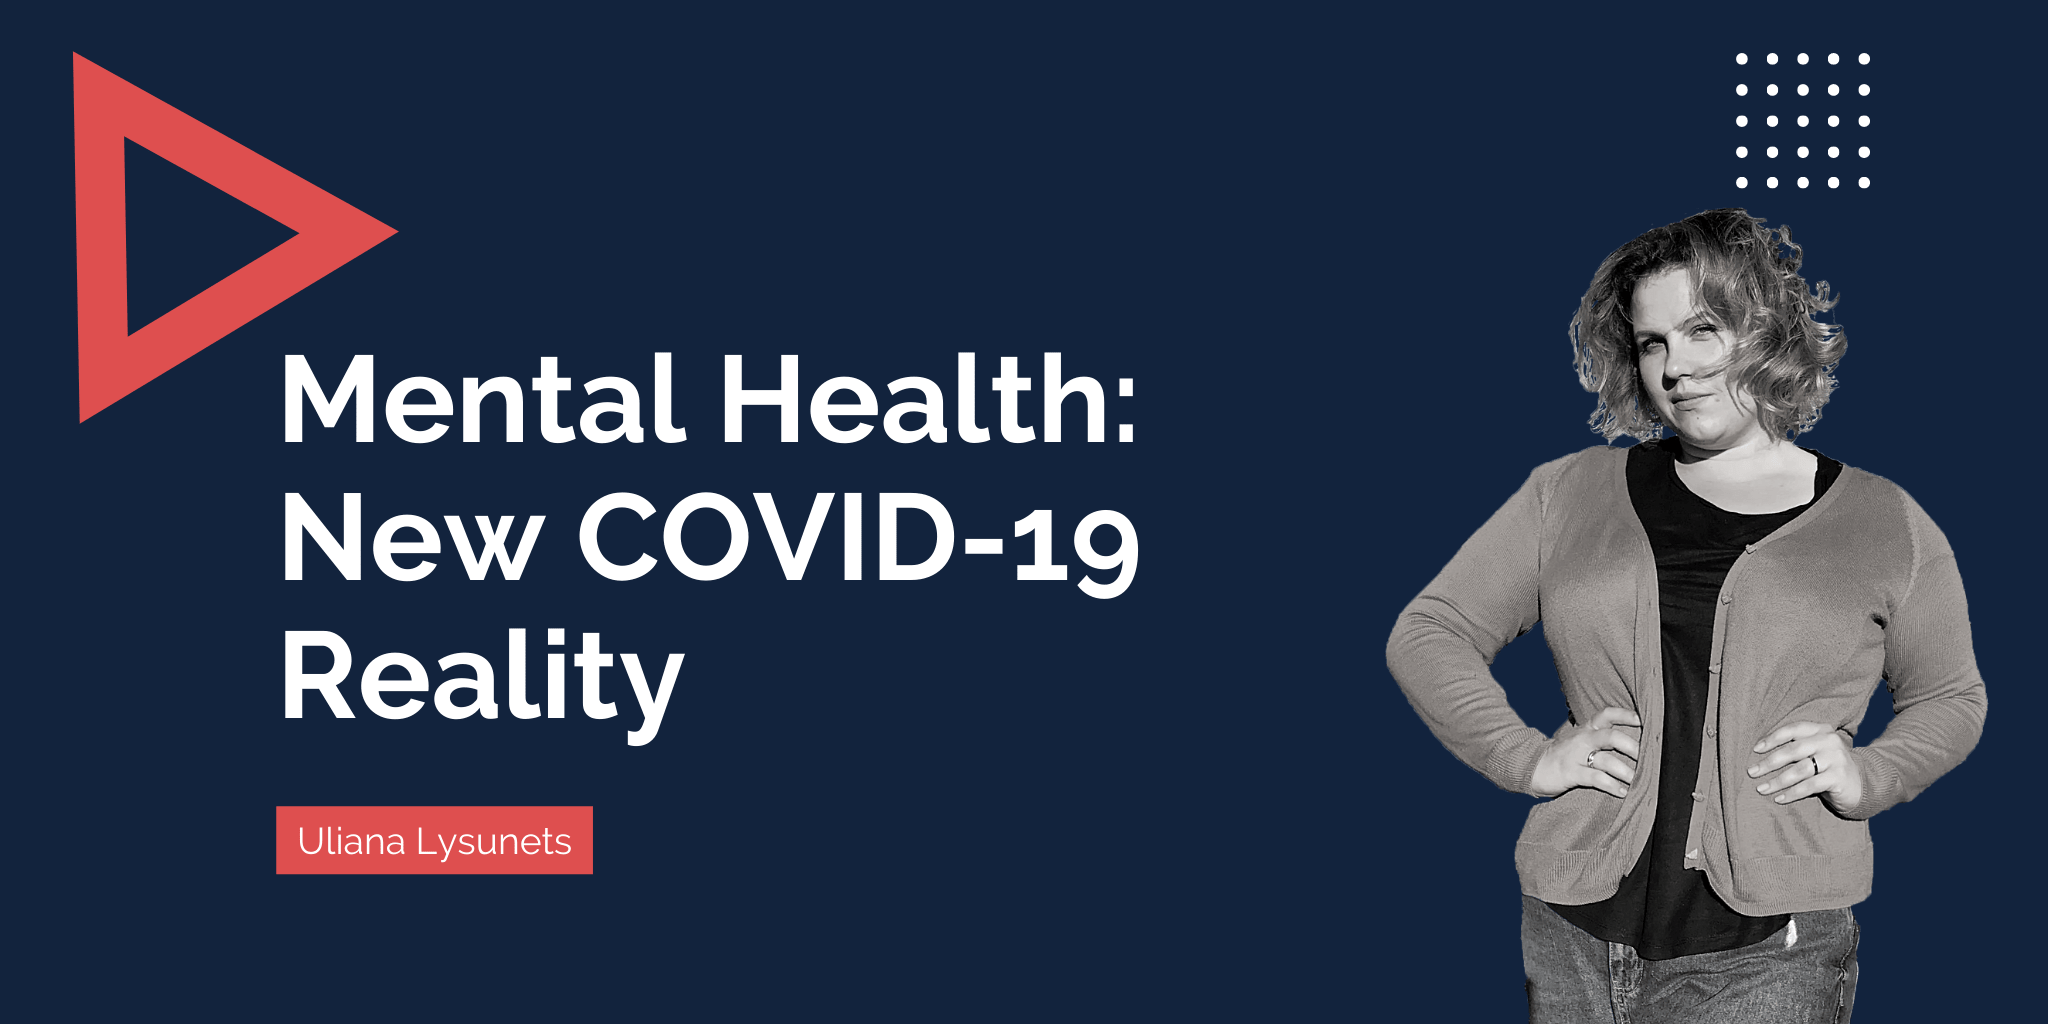 Mental Health in the Time of COVID-19: Why to Be Super Attentive to Yourself and Your Loved Ones